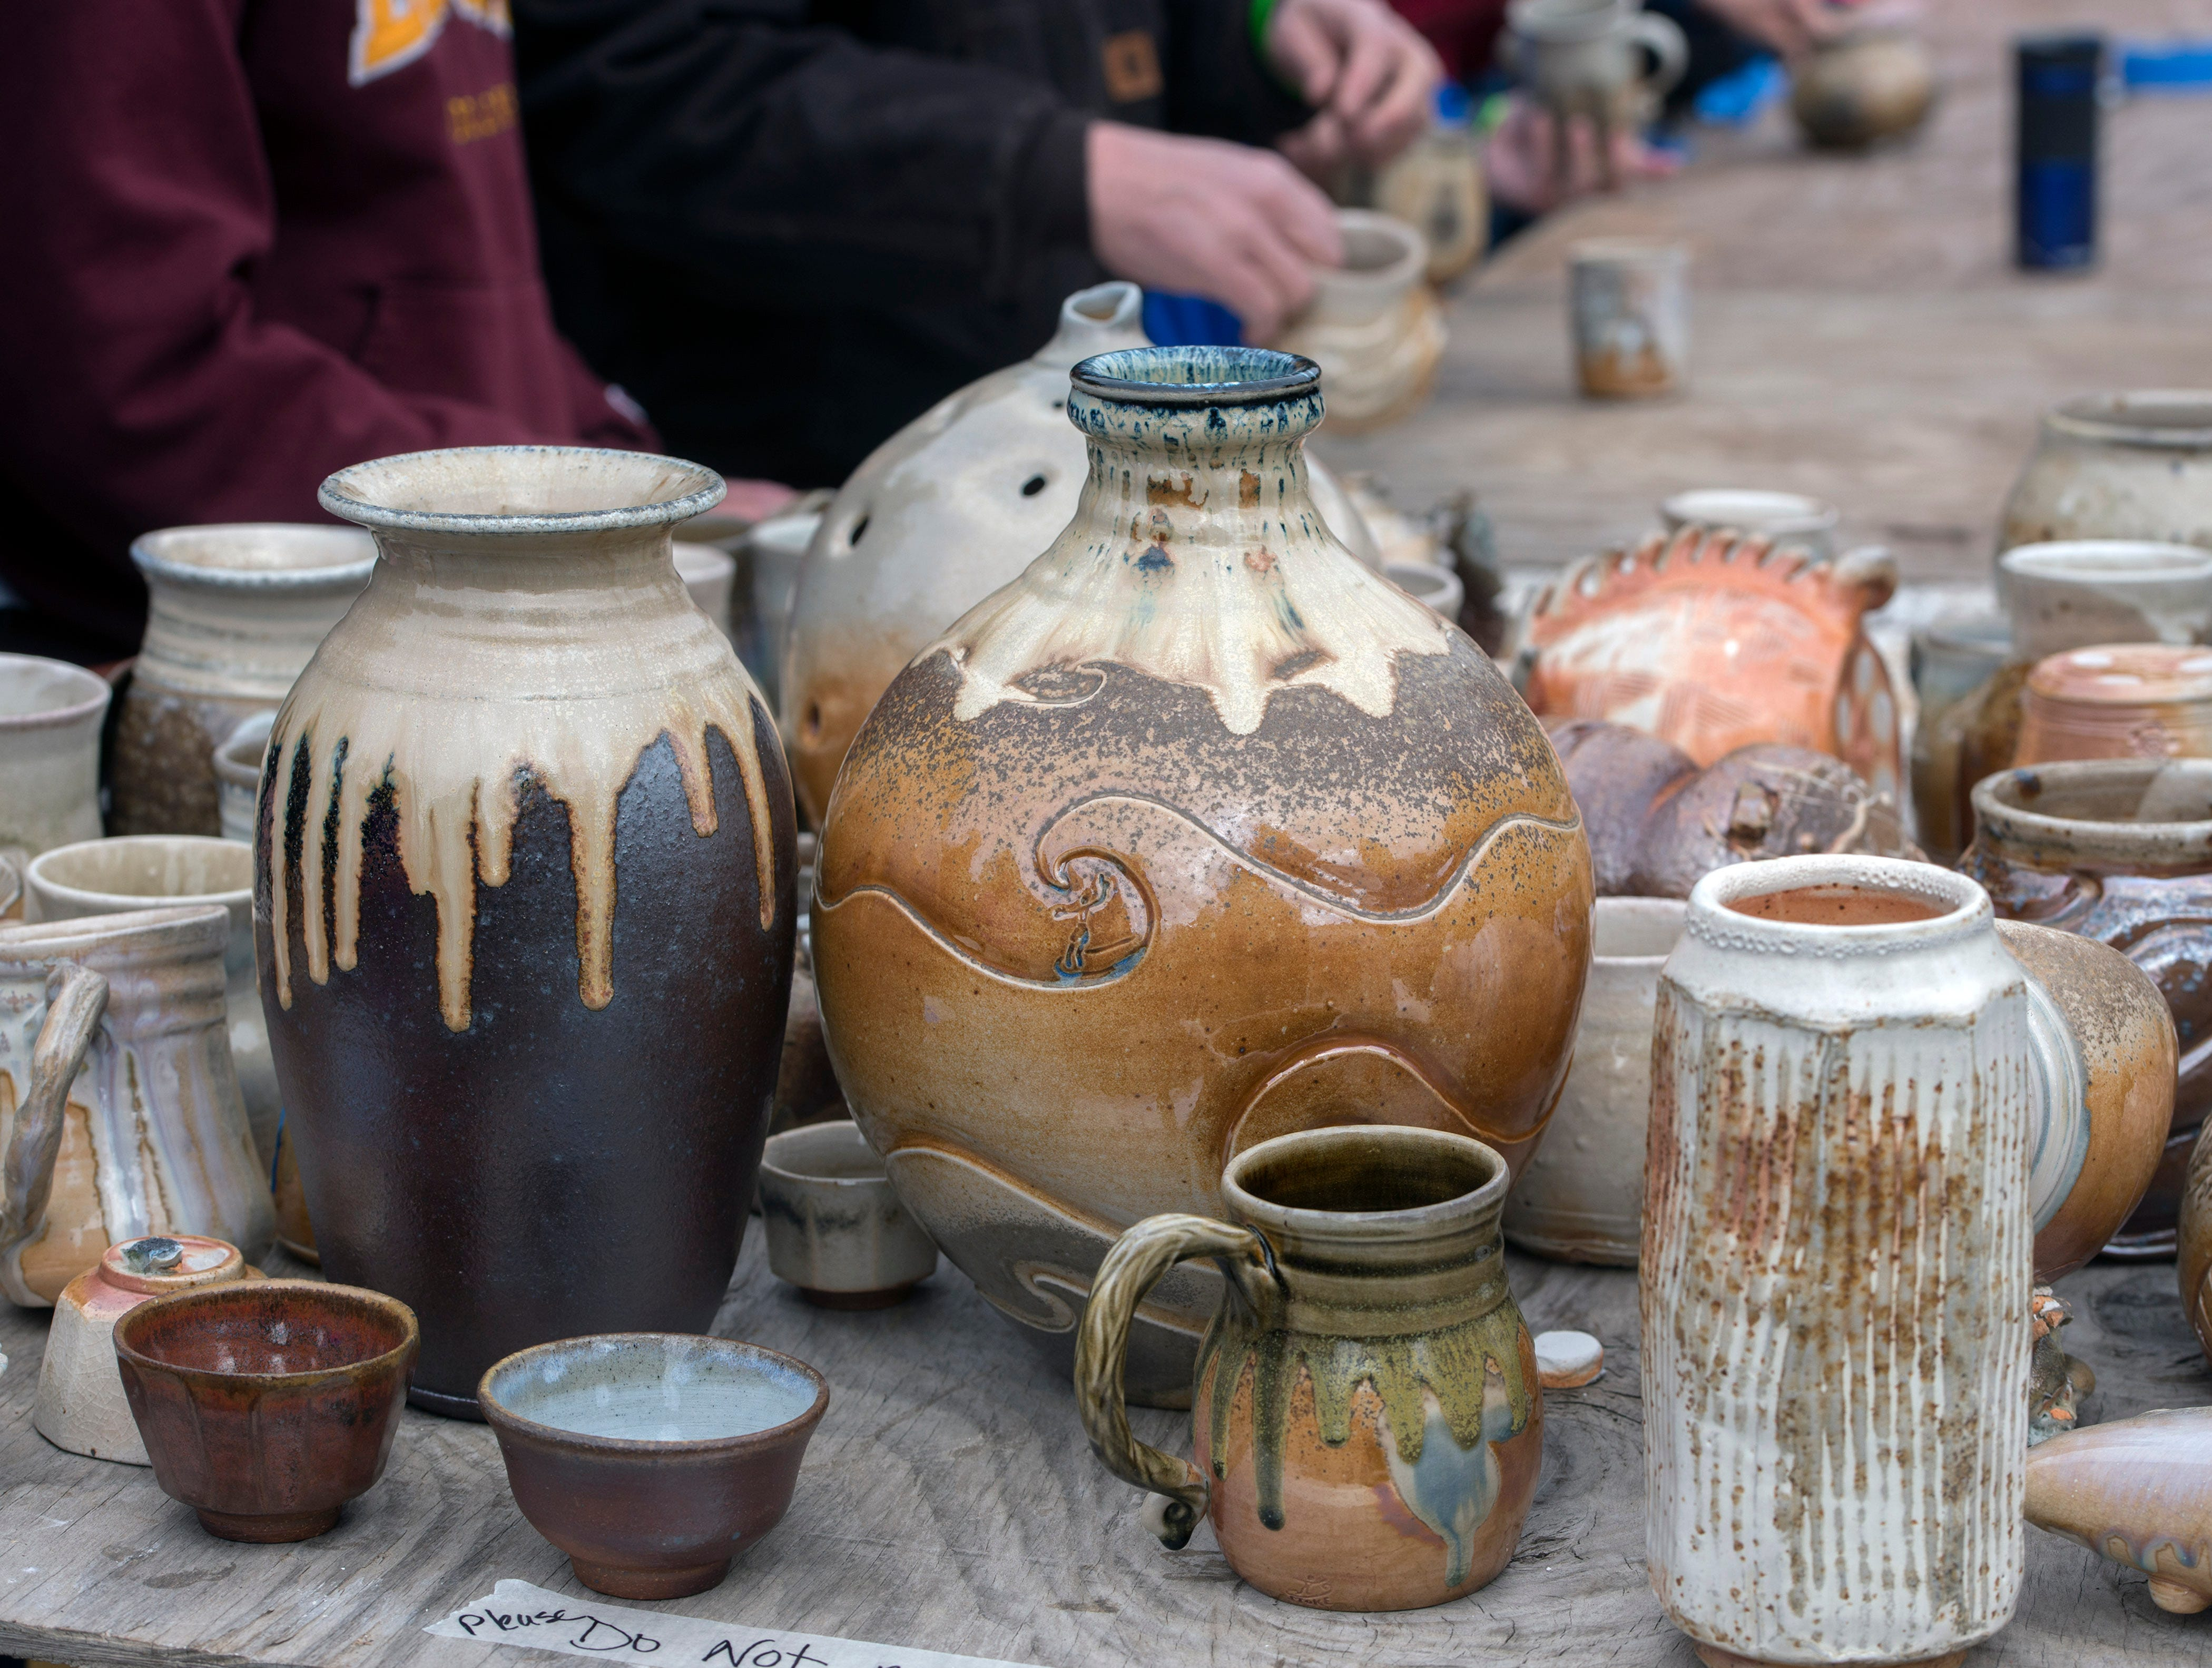 Pottery on display Saturday, February 9, 2019, during the 14th annual Woodstoke Pottery and Kiln Festival at Holly Hill Pottery in Navarre.